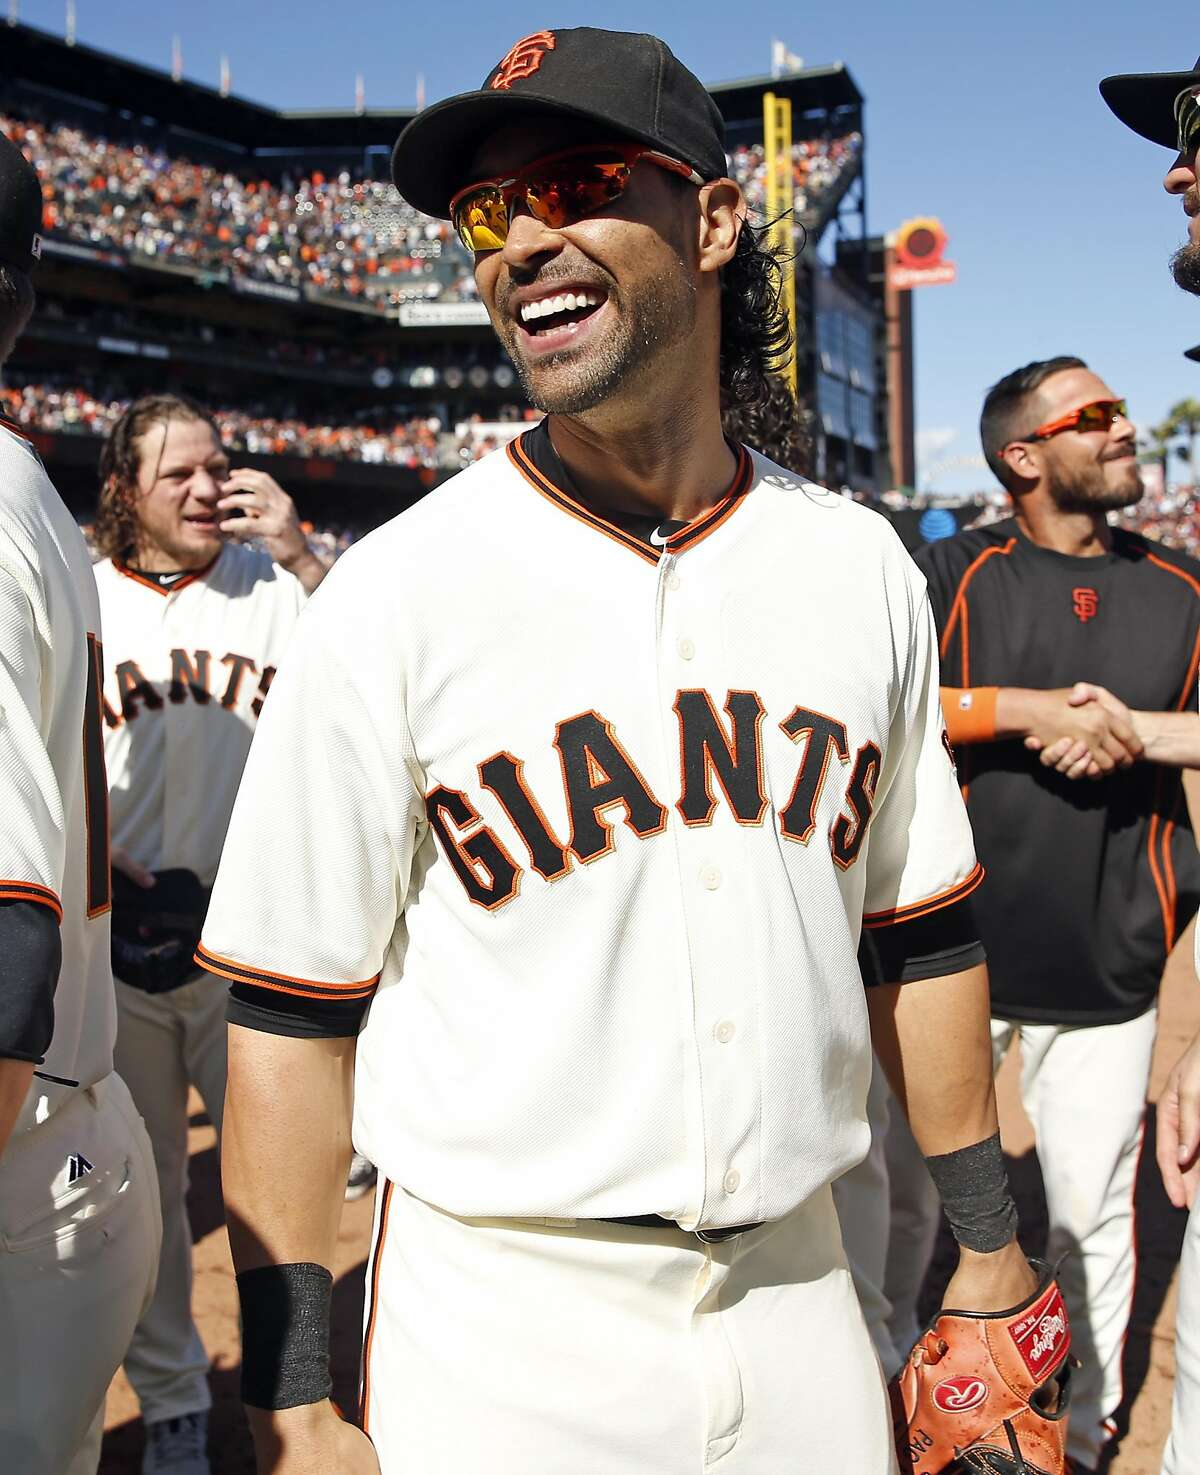 San Francisco Giants' Angel Pagan celebrates after the Giants clinched a wild card berth with 7-1 win over Los Angeles Dodgers during MLB game at AT&T Park in San Francisco, Calif., on Sunday, October 2, 2016.